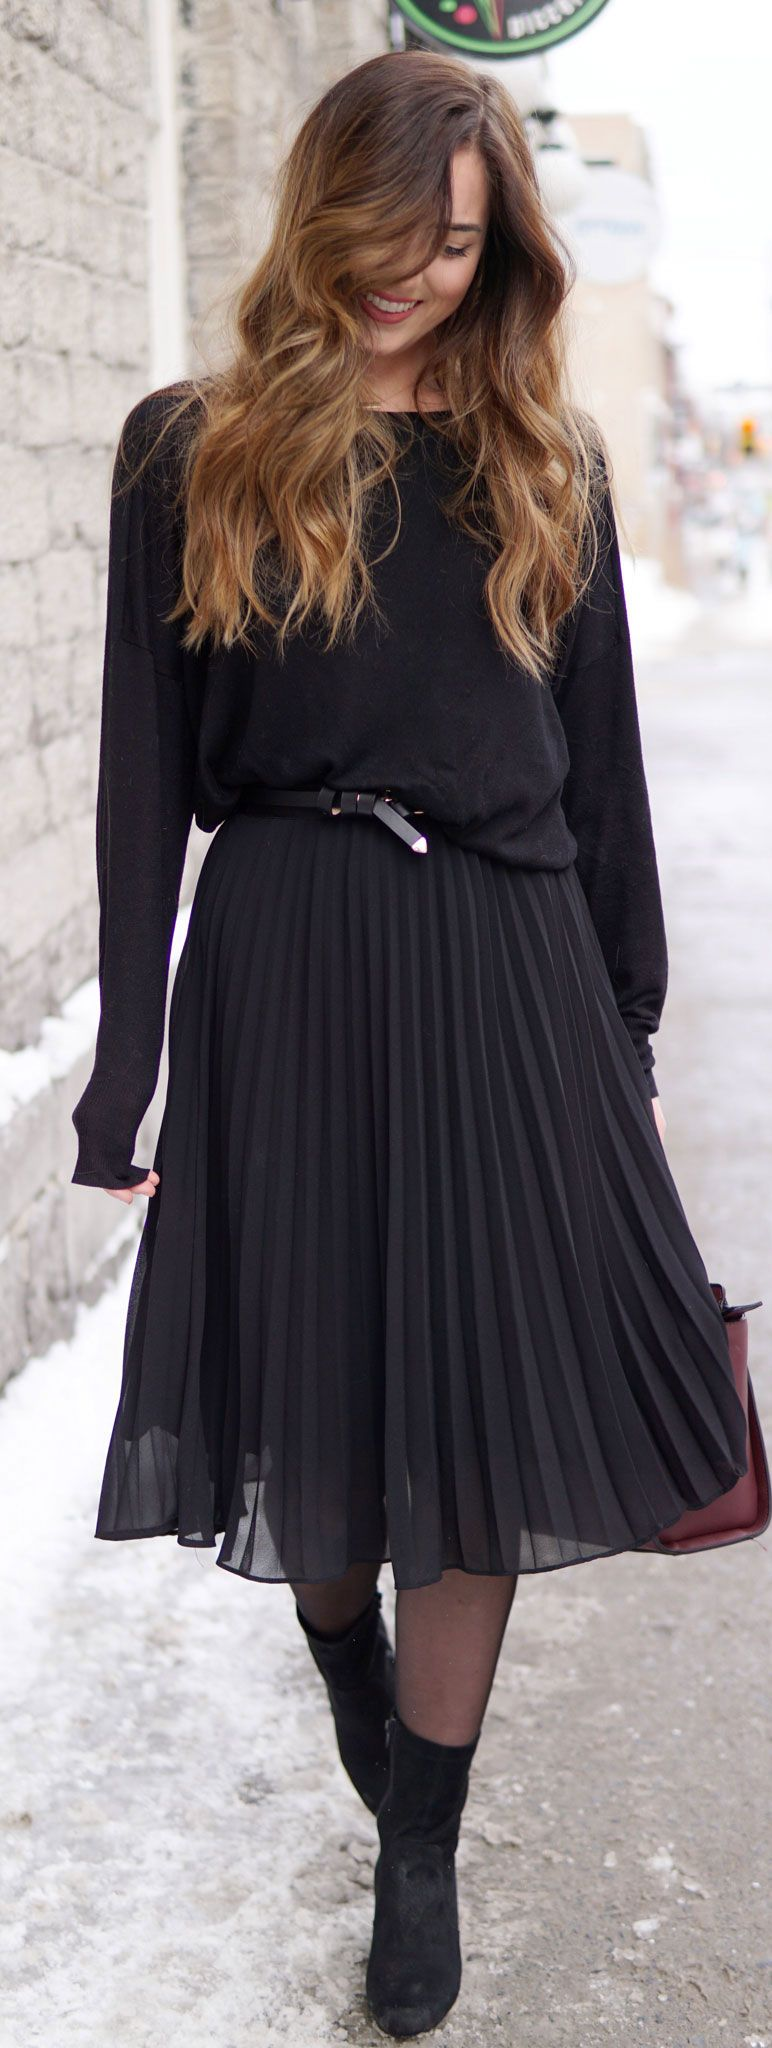 How to wear a pleated skirt in winter – pt 2 (& giveaway winners